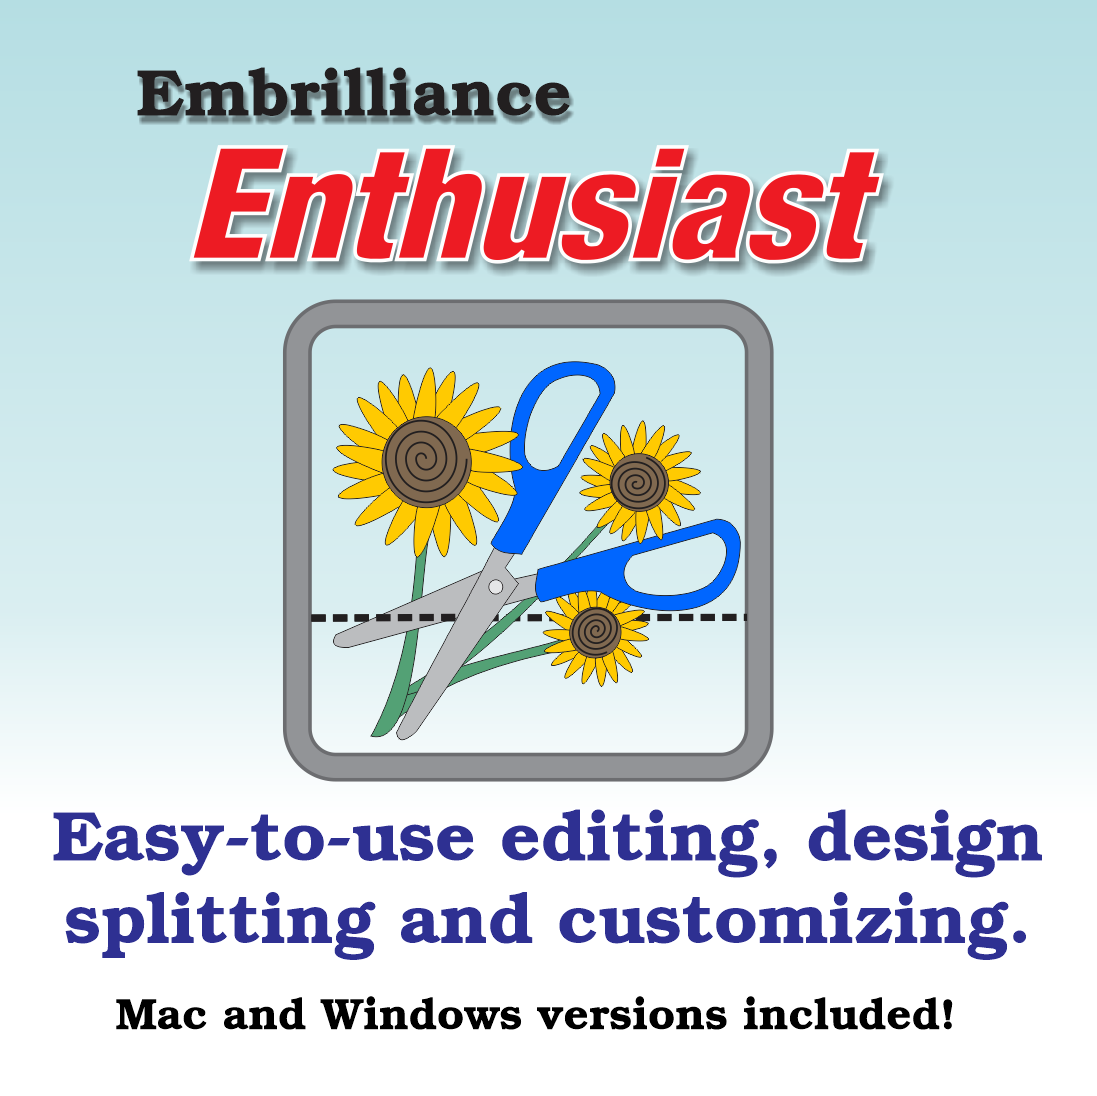 Embrilliance Essentials icon and text.